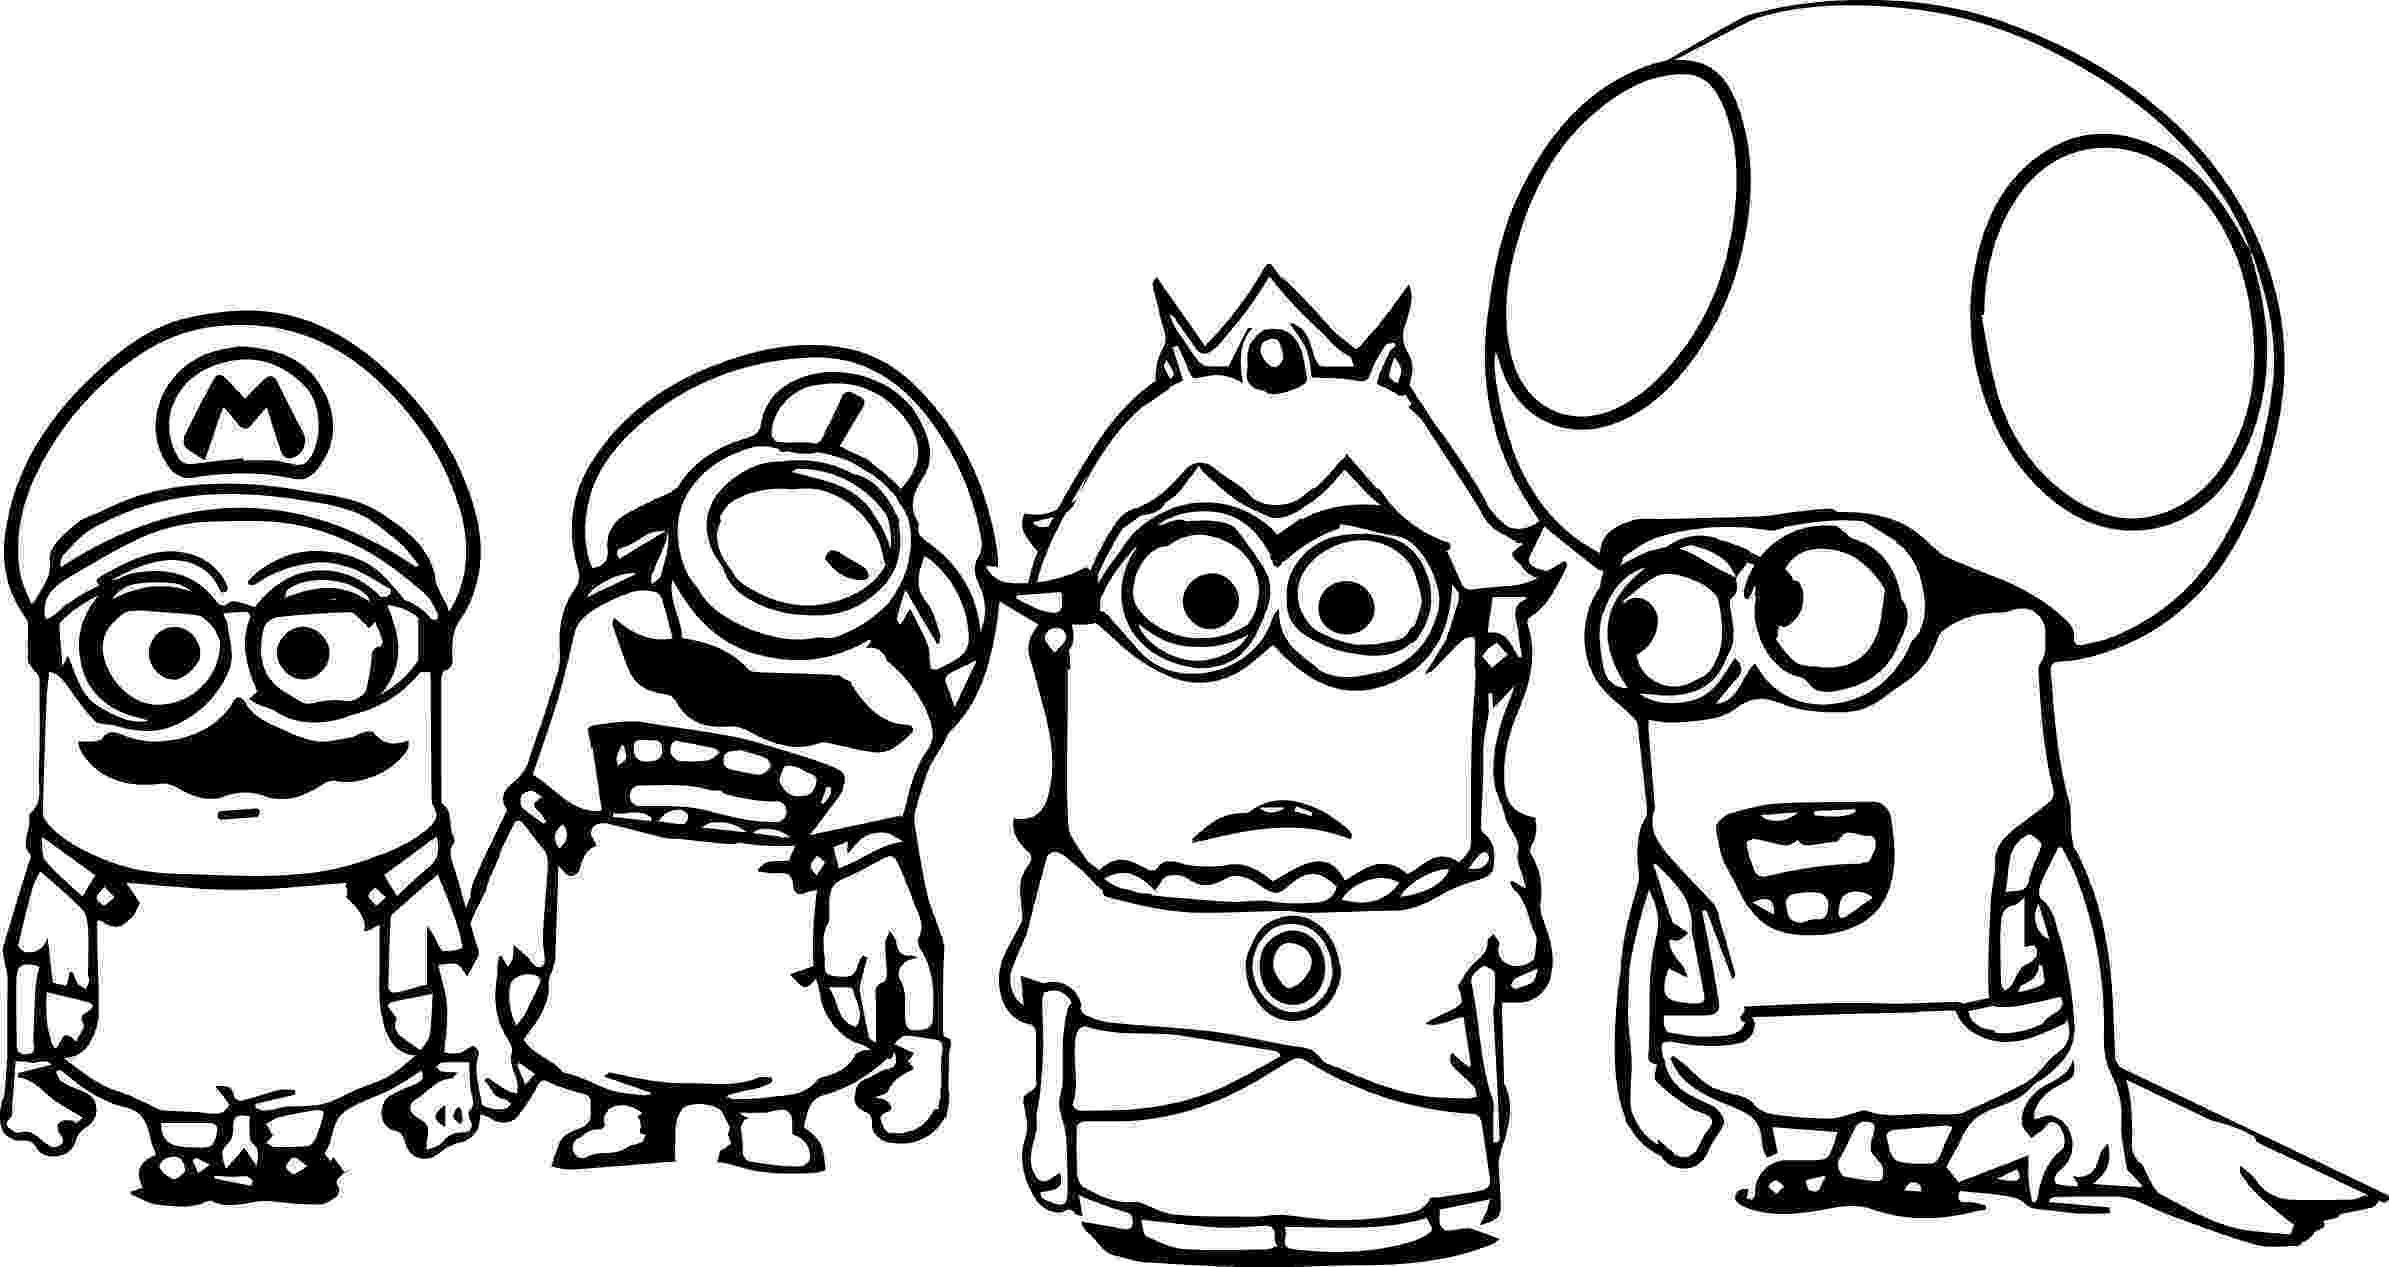 pictures of minions to color minions to color for kids minions kids coloring pages to of color pictures minions